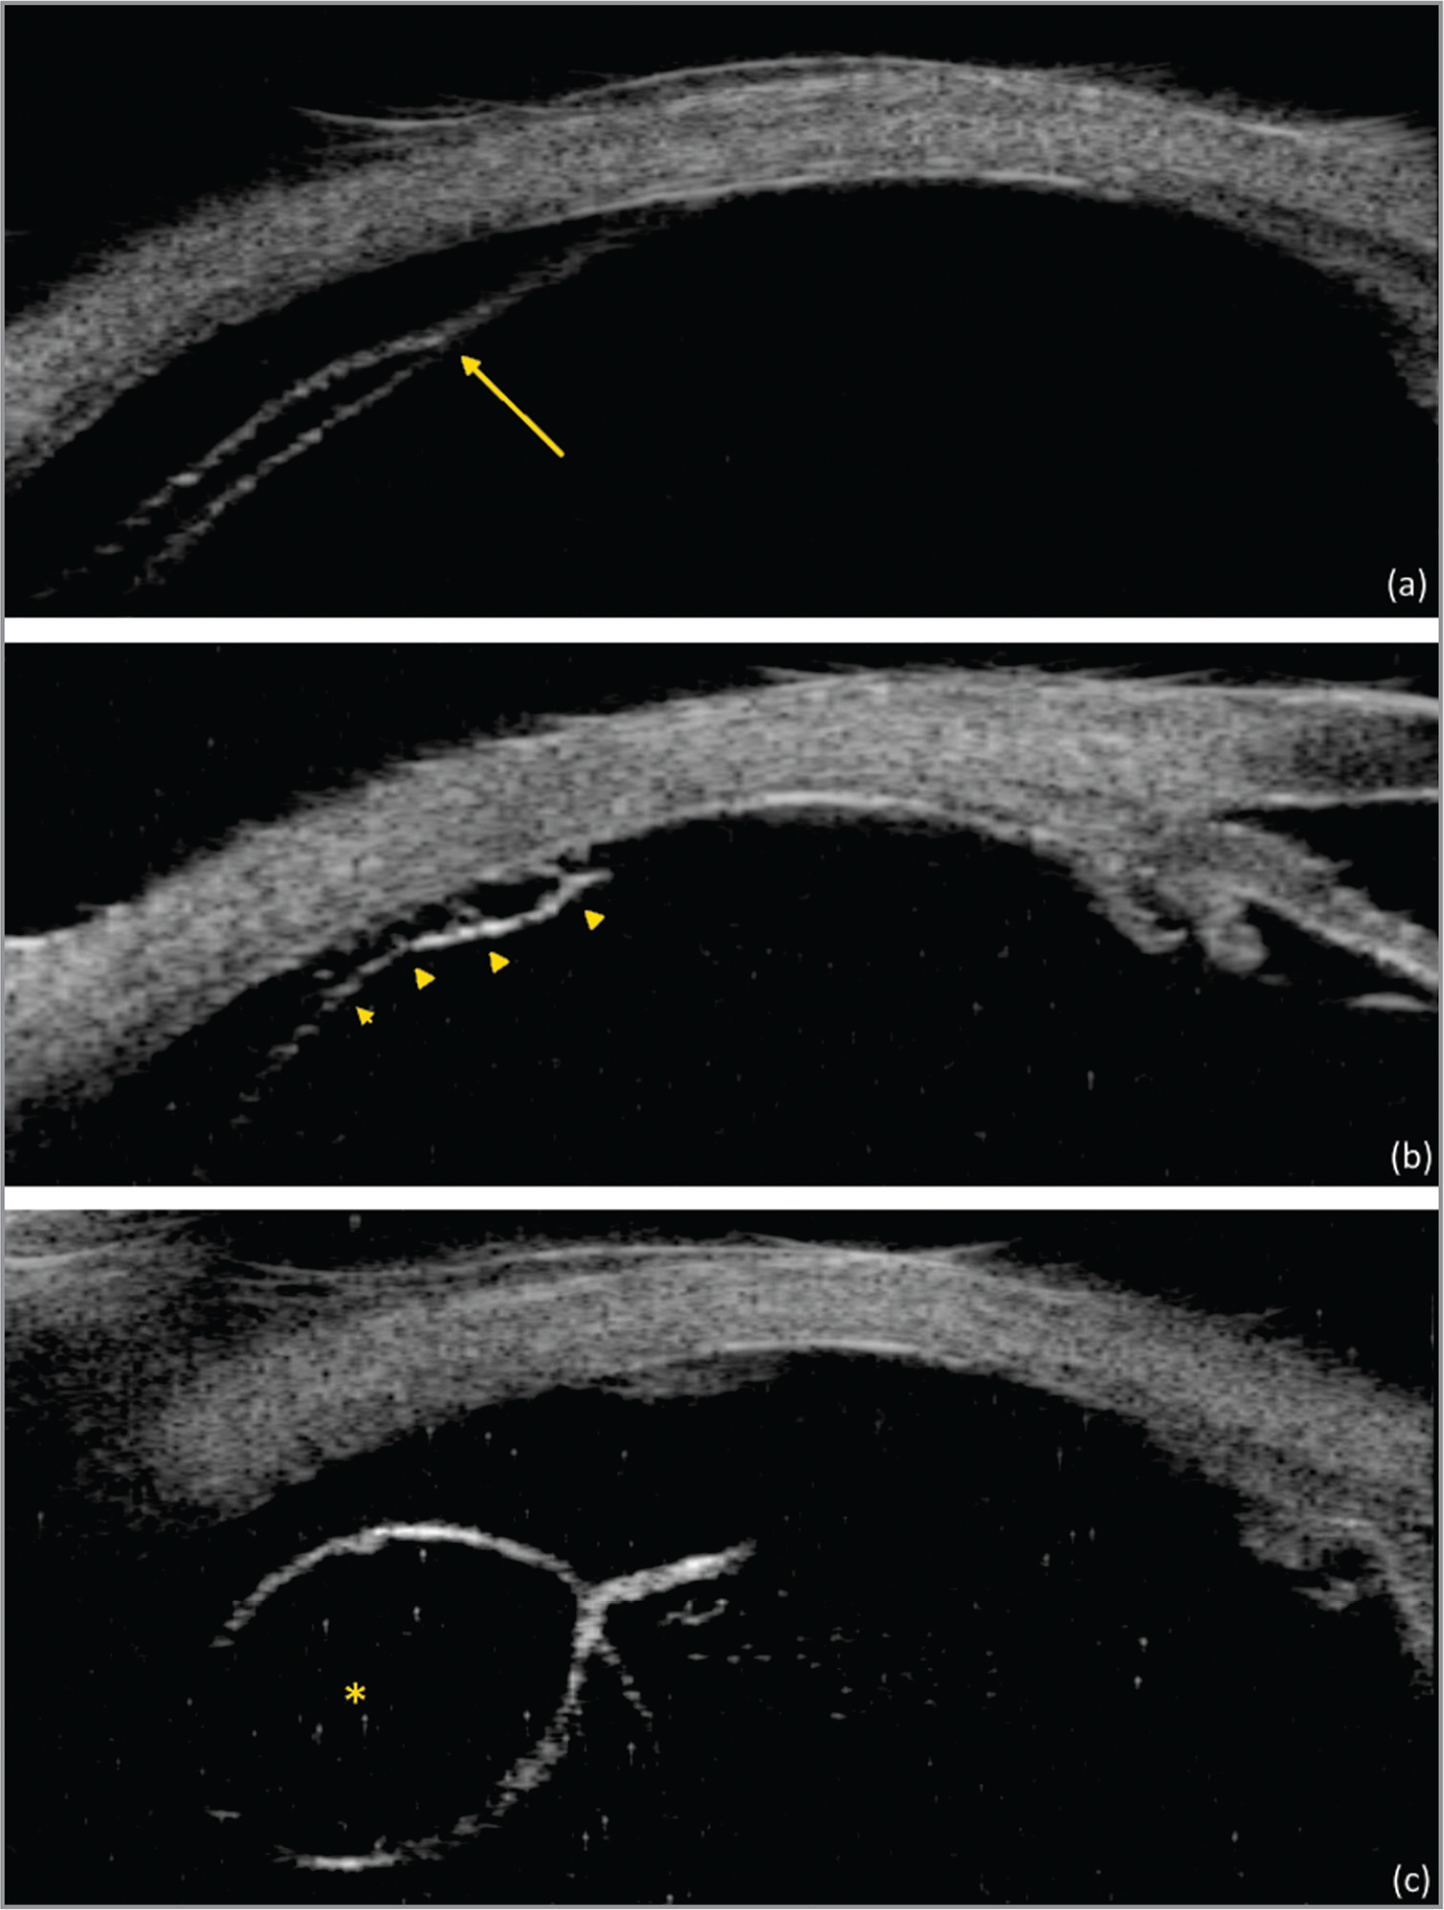 Sample images of ultrasound biomicroscopy retinal structures: Retinal layers split (a), intraretinal pillars (b), and intraretinal cysts (c).